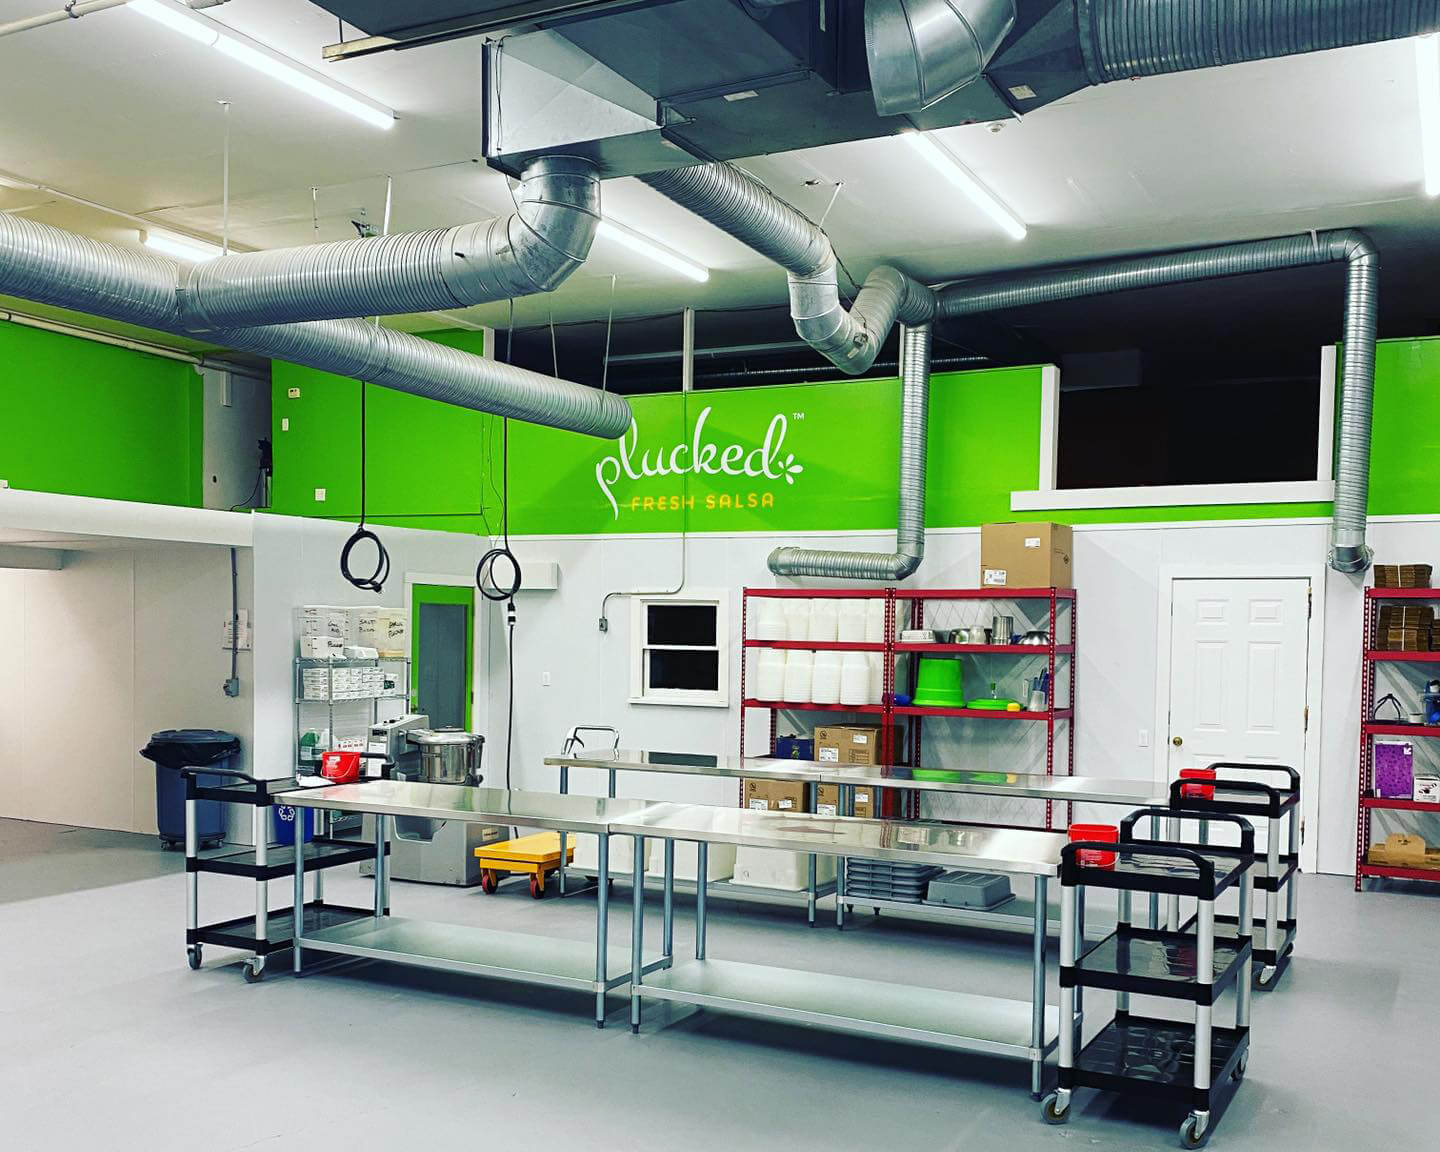 Plucked Fresh Salsa Kitchen and Production Facility